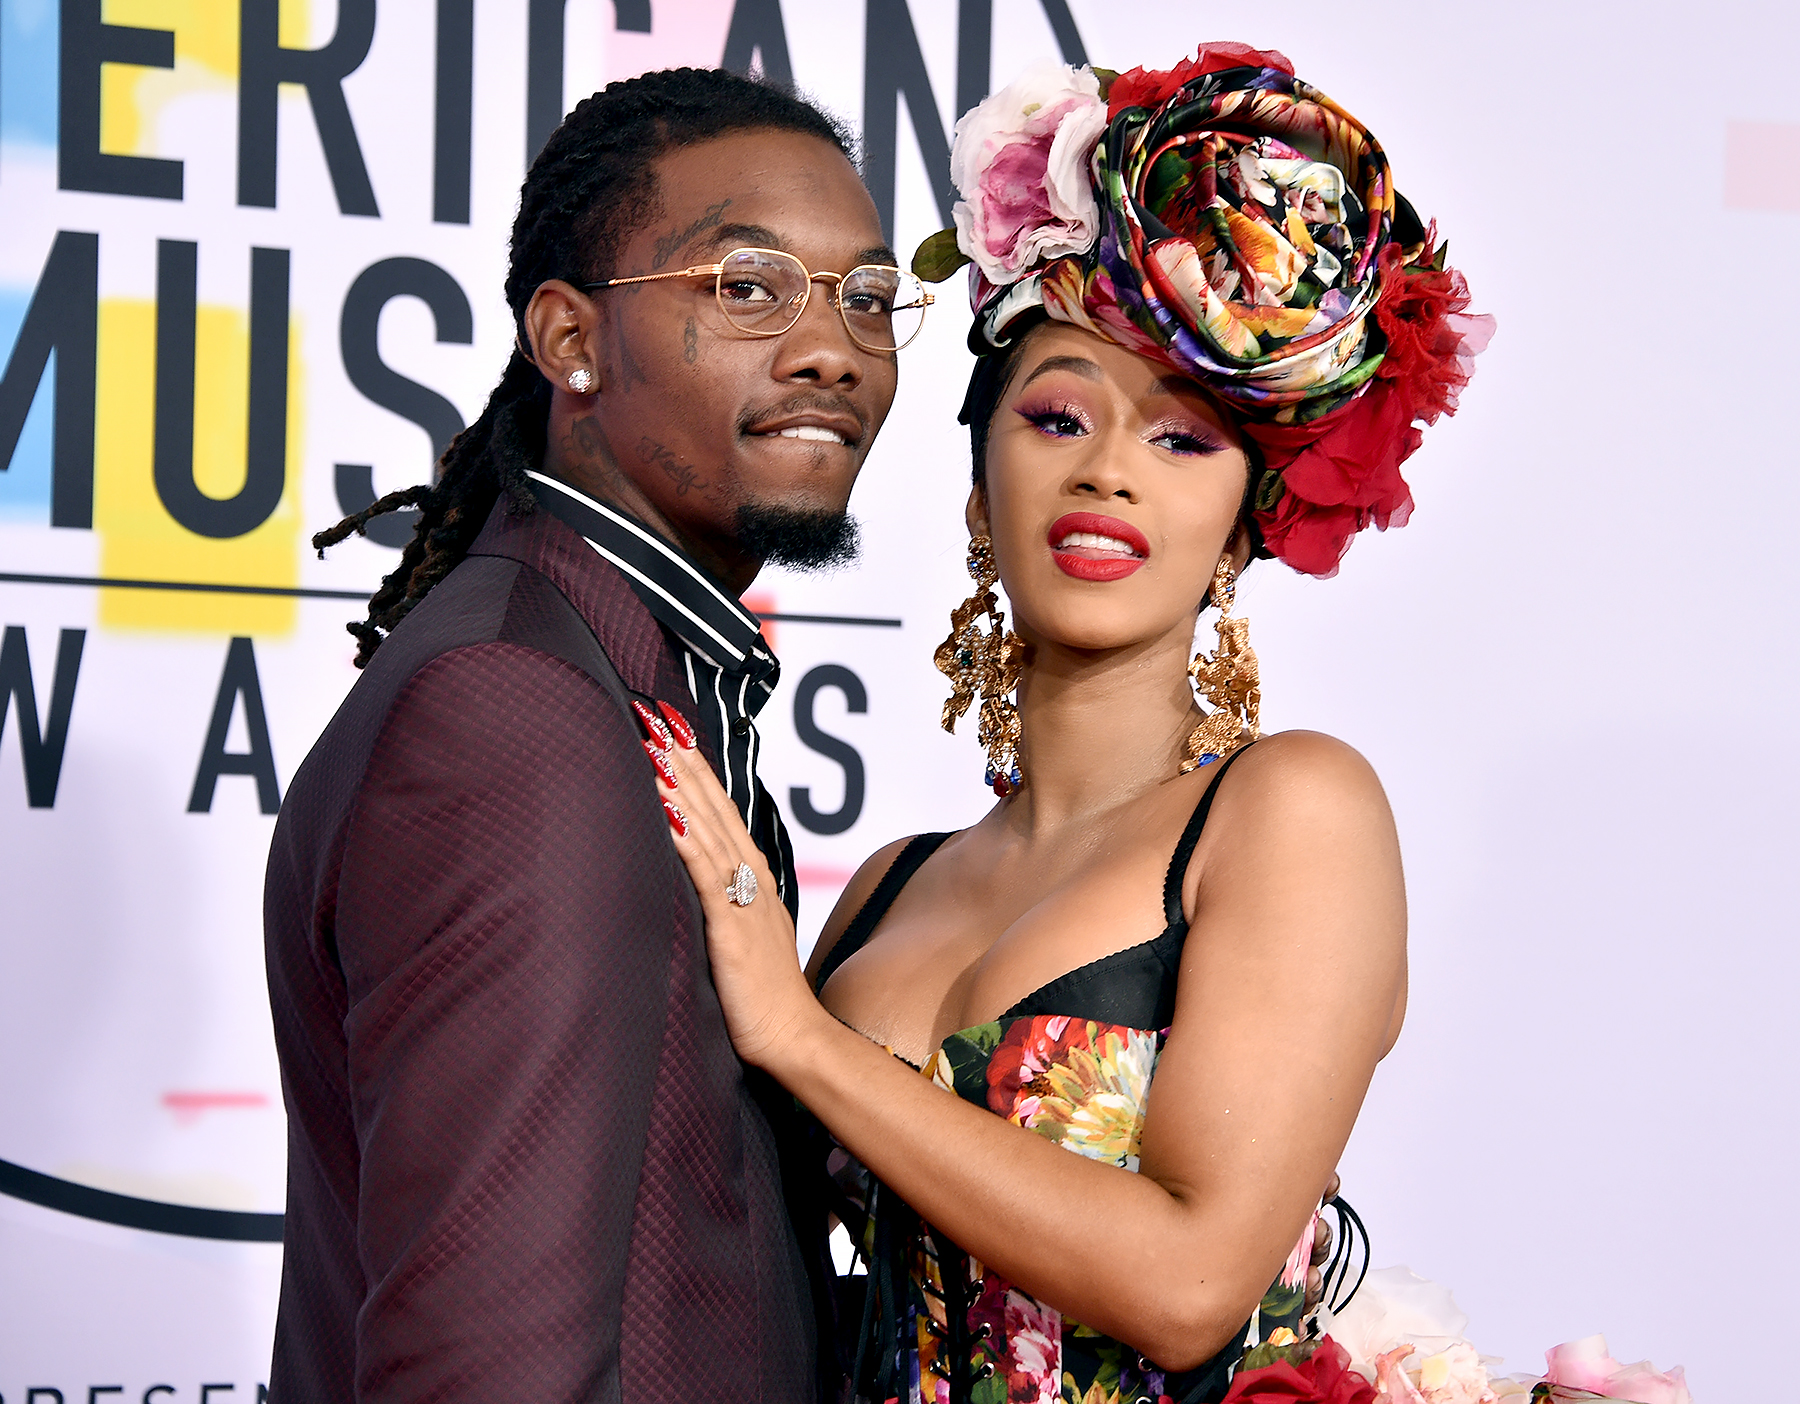 cardi-b-offset-tweet - Offset and Cardi B attend the 2018 American Music Awards at Microsoft Theater on October 9, 2018 in Los Angeles, California.